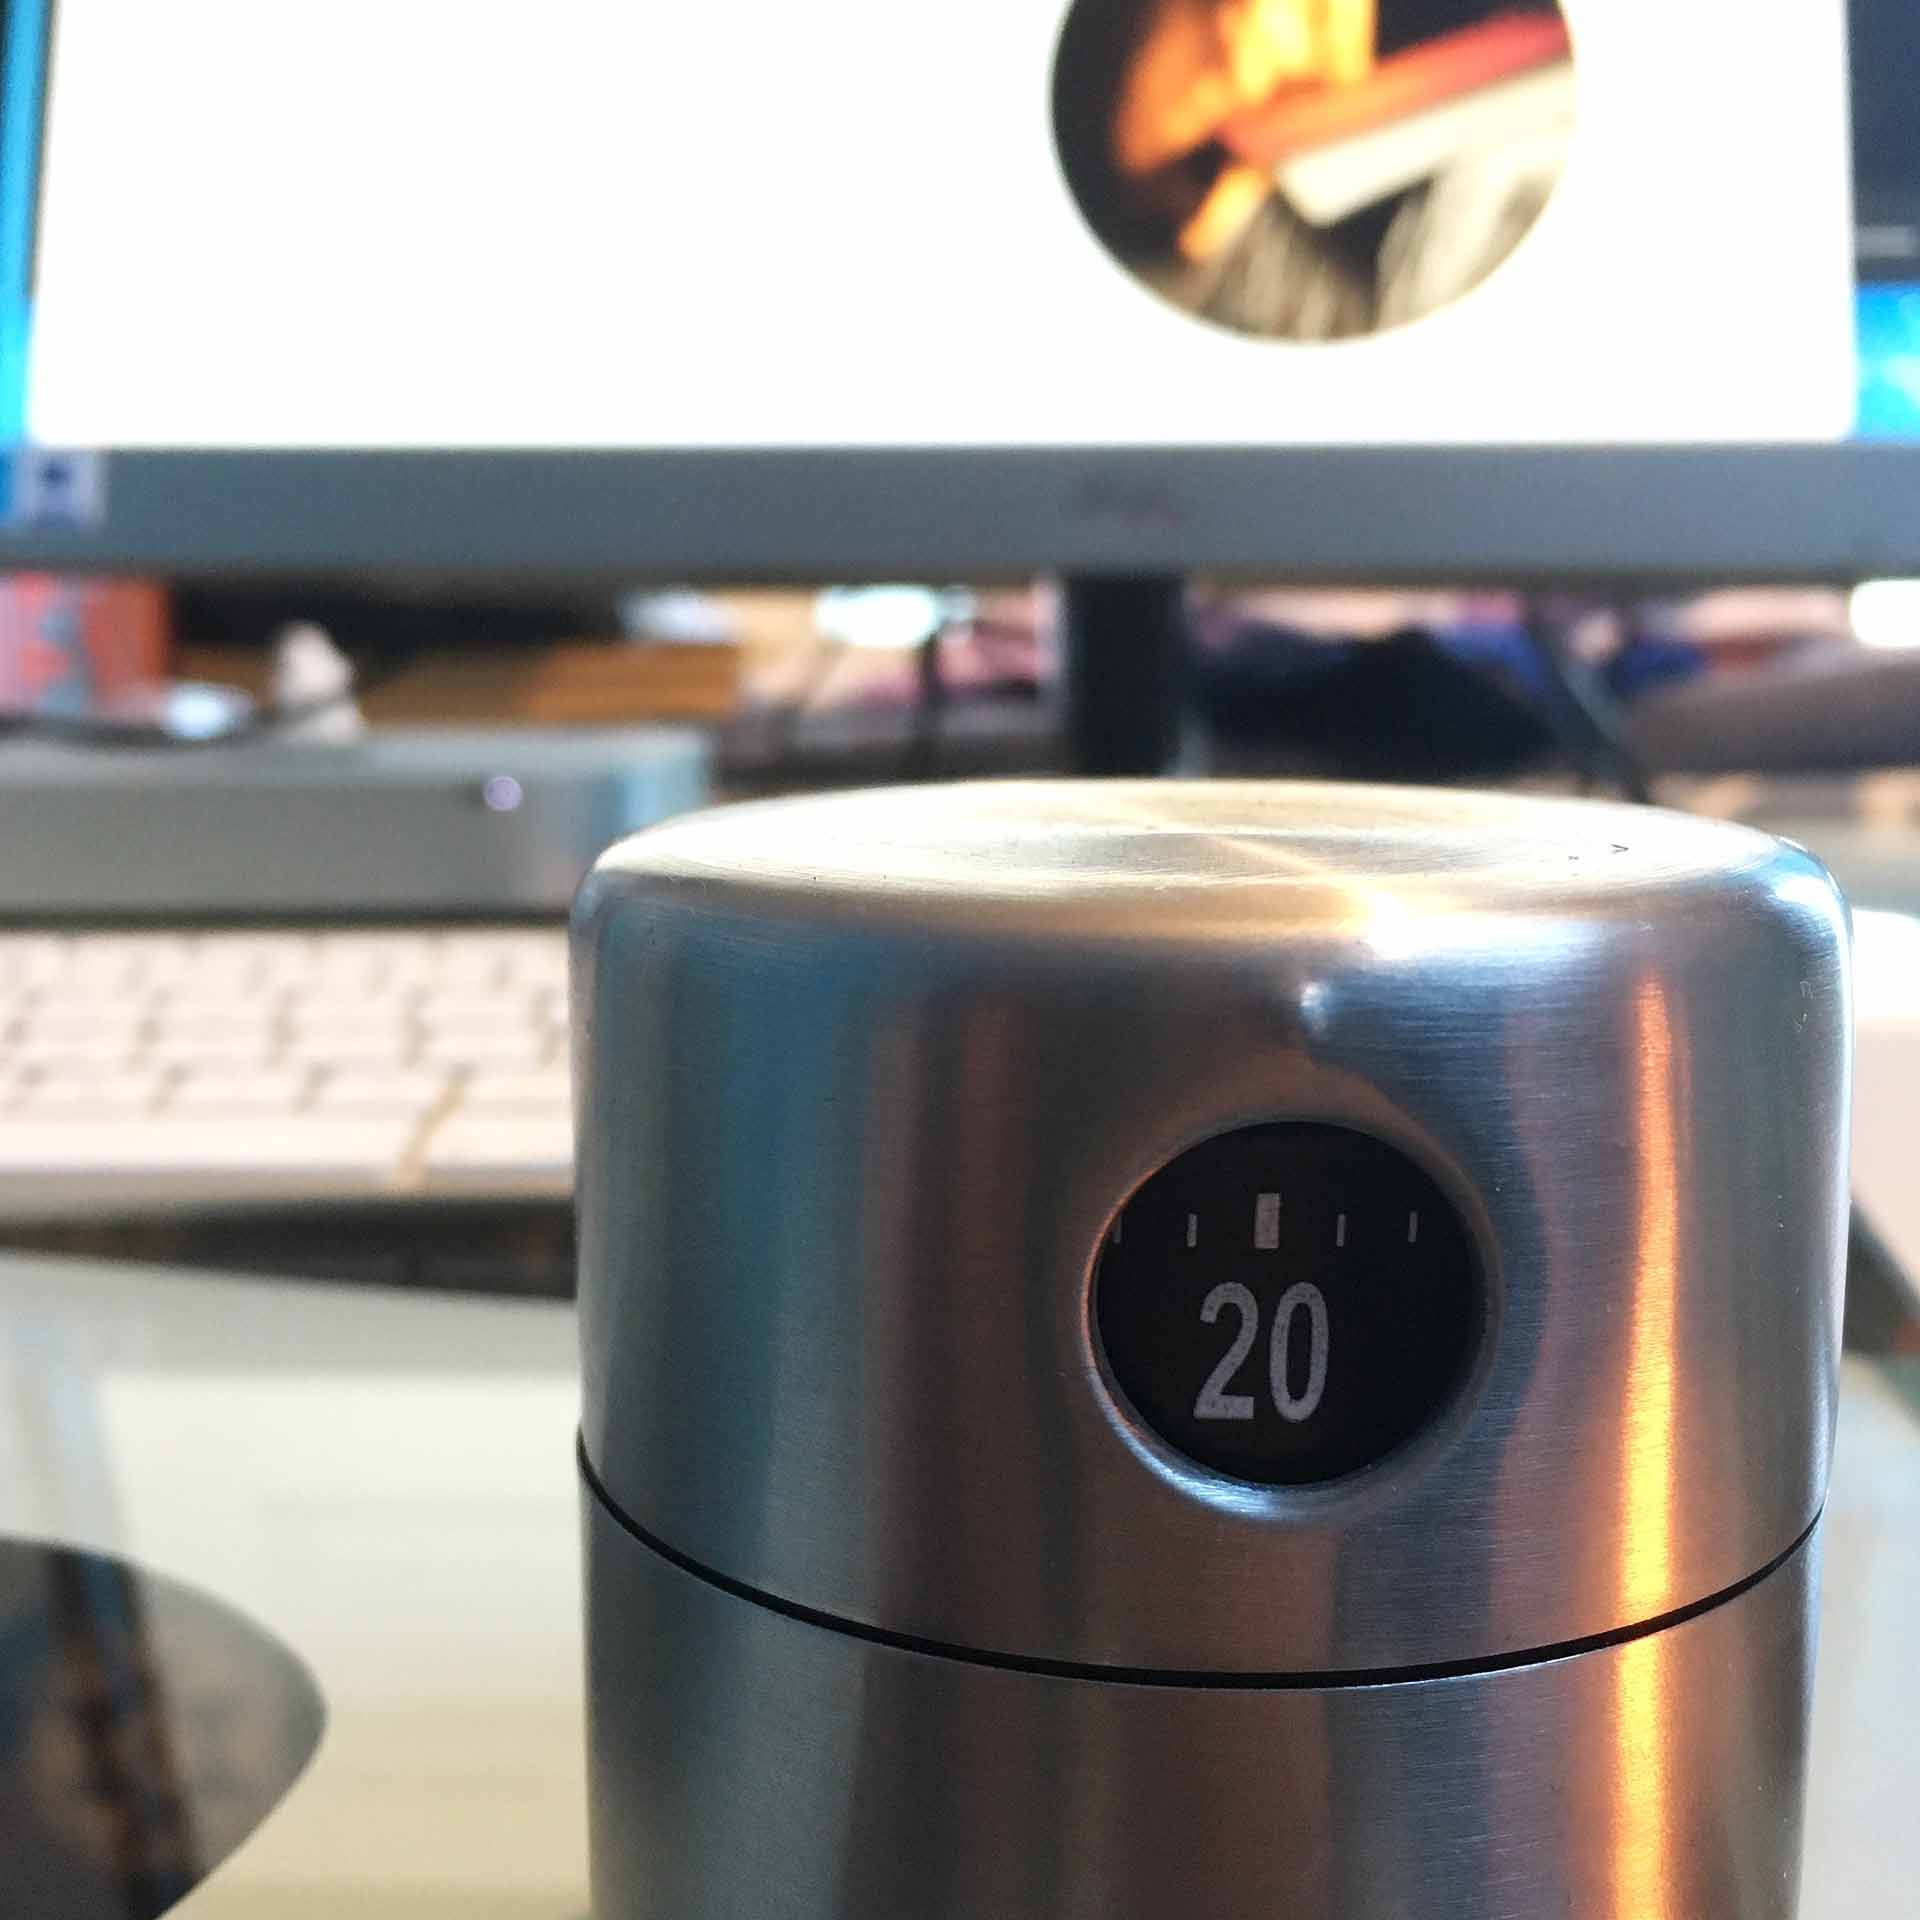 Timer on my desk